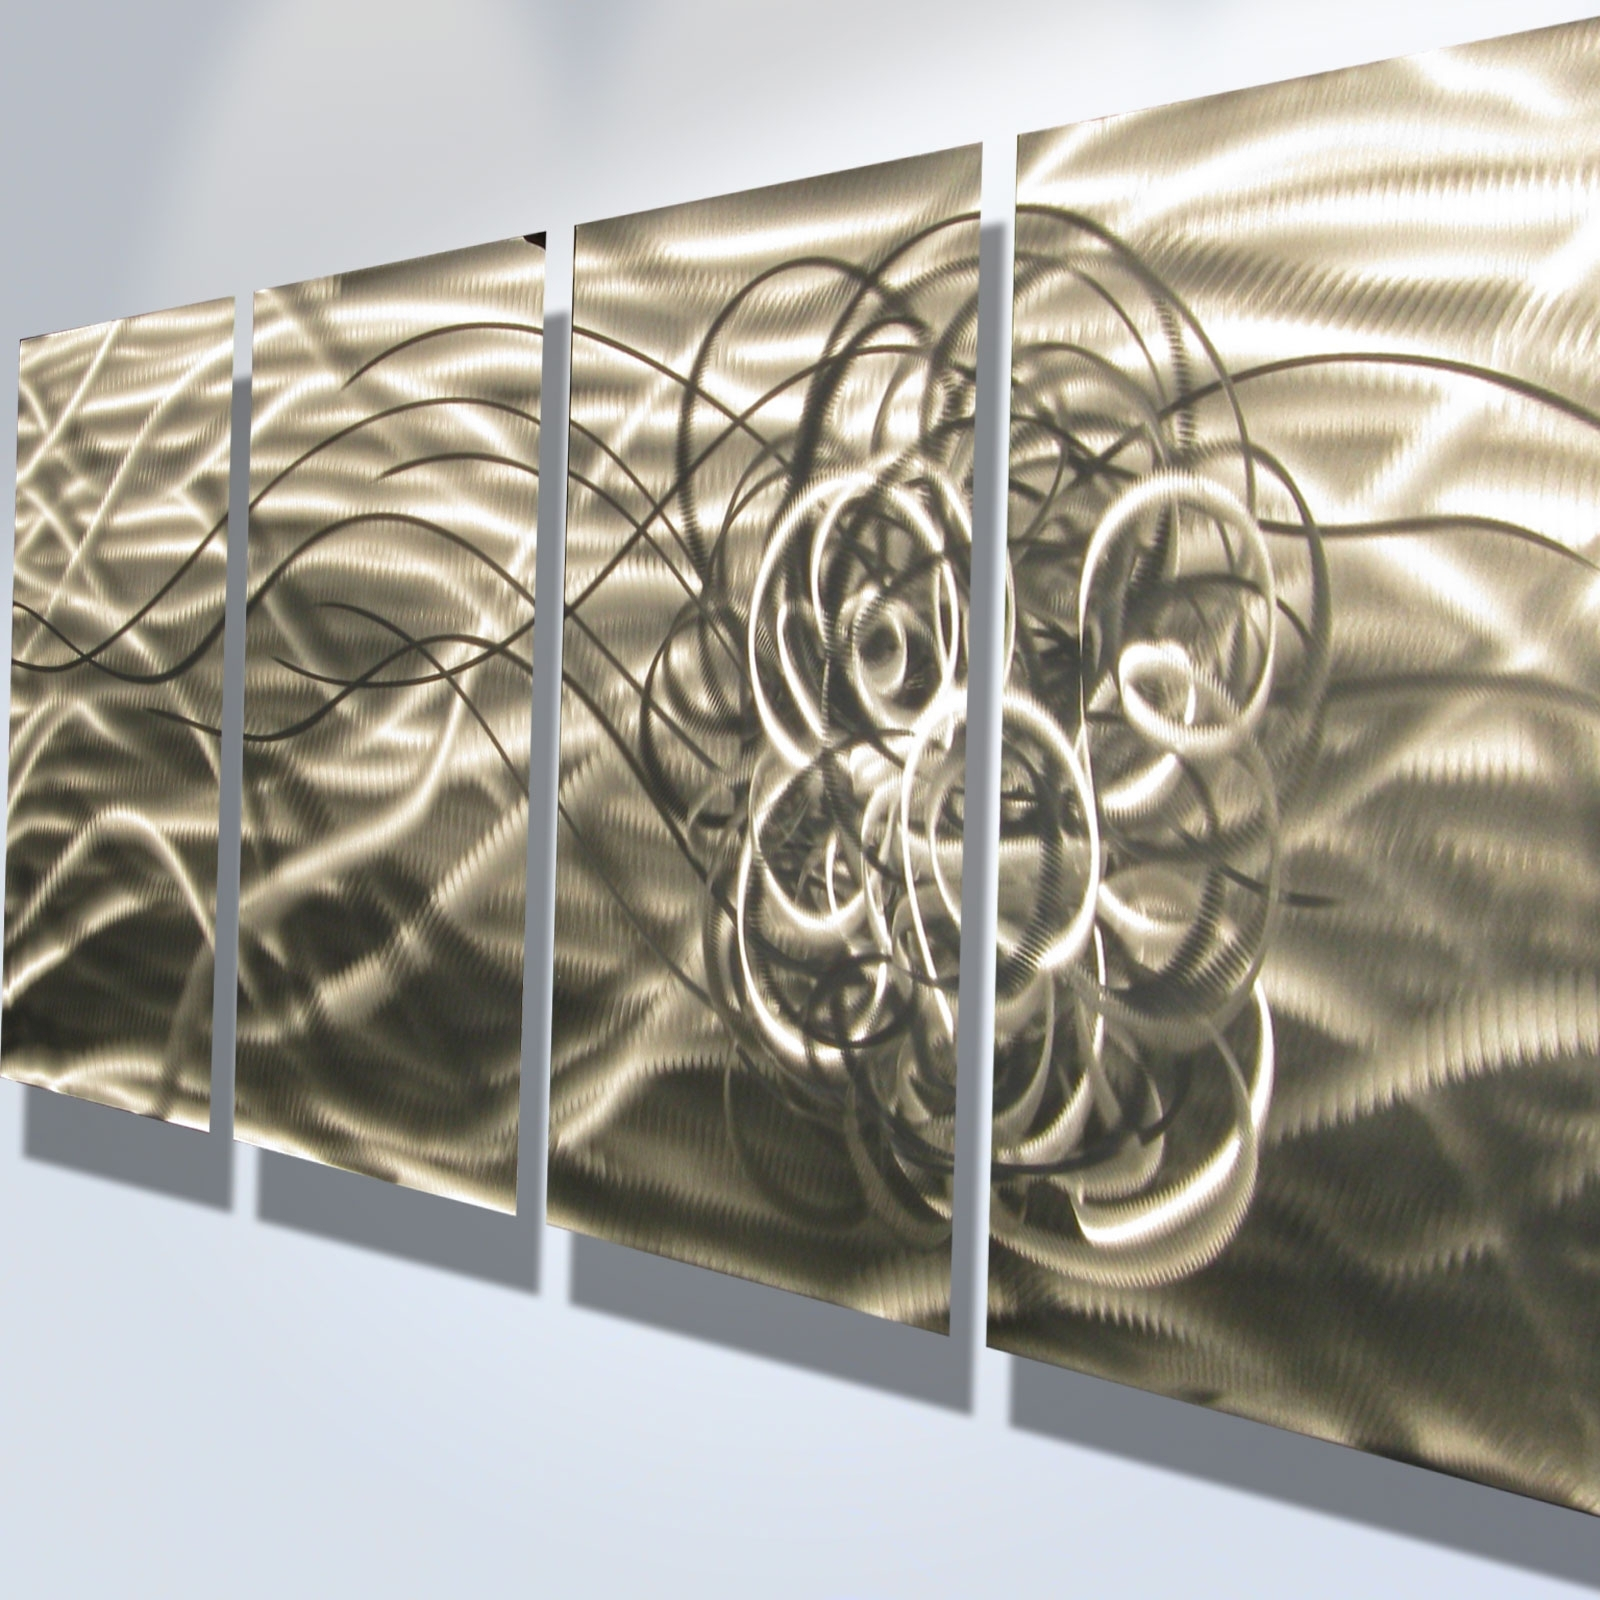 Classy 10+ Abstract Metal Wall Art Design Inspiration Of Best 25+ With Regard To Preferred Kindred Abstract Metal Wall Art (Gallery 4 of 15)